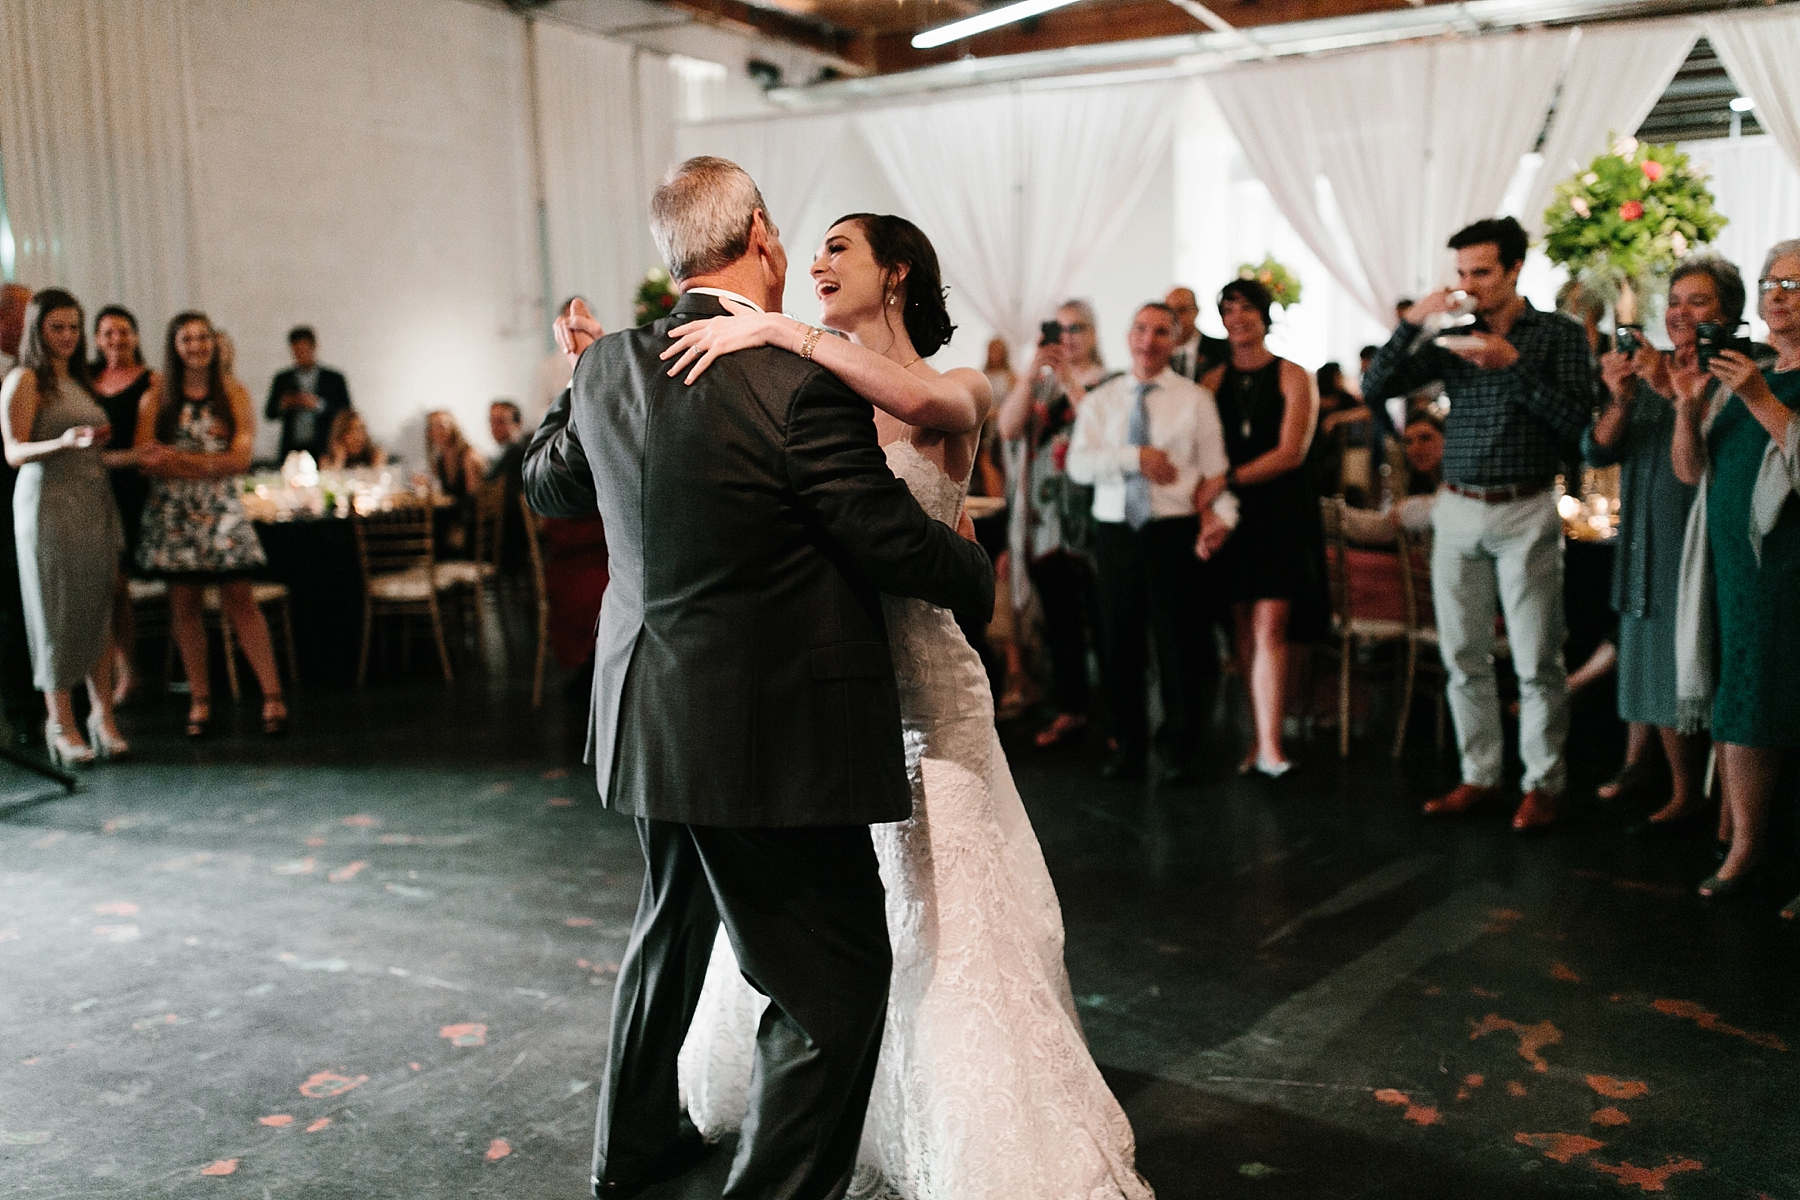 Emily + Caleb _ an elegant, intentional, industrial style wedding with navy + gold accents at 6500 in Dallas, TX by North Texas Wedding Photographer Rachel Meagan Photography _ 146